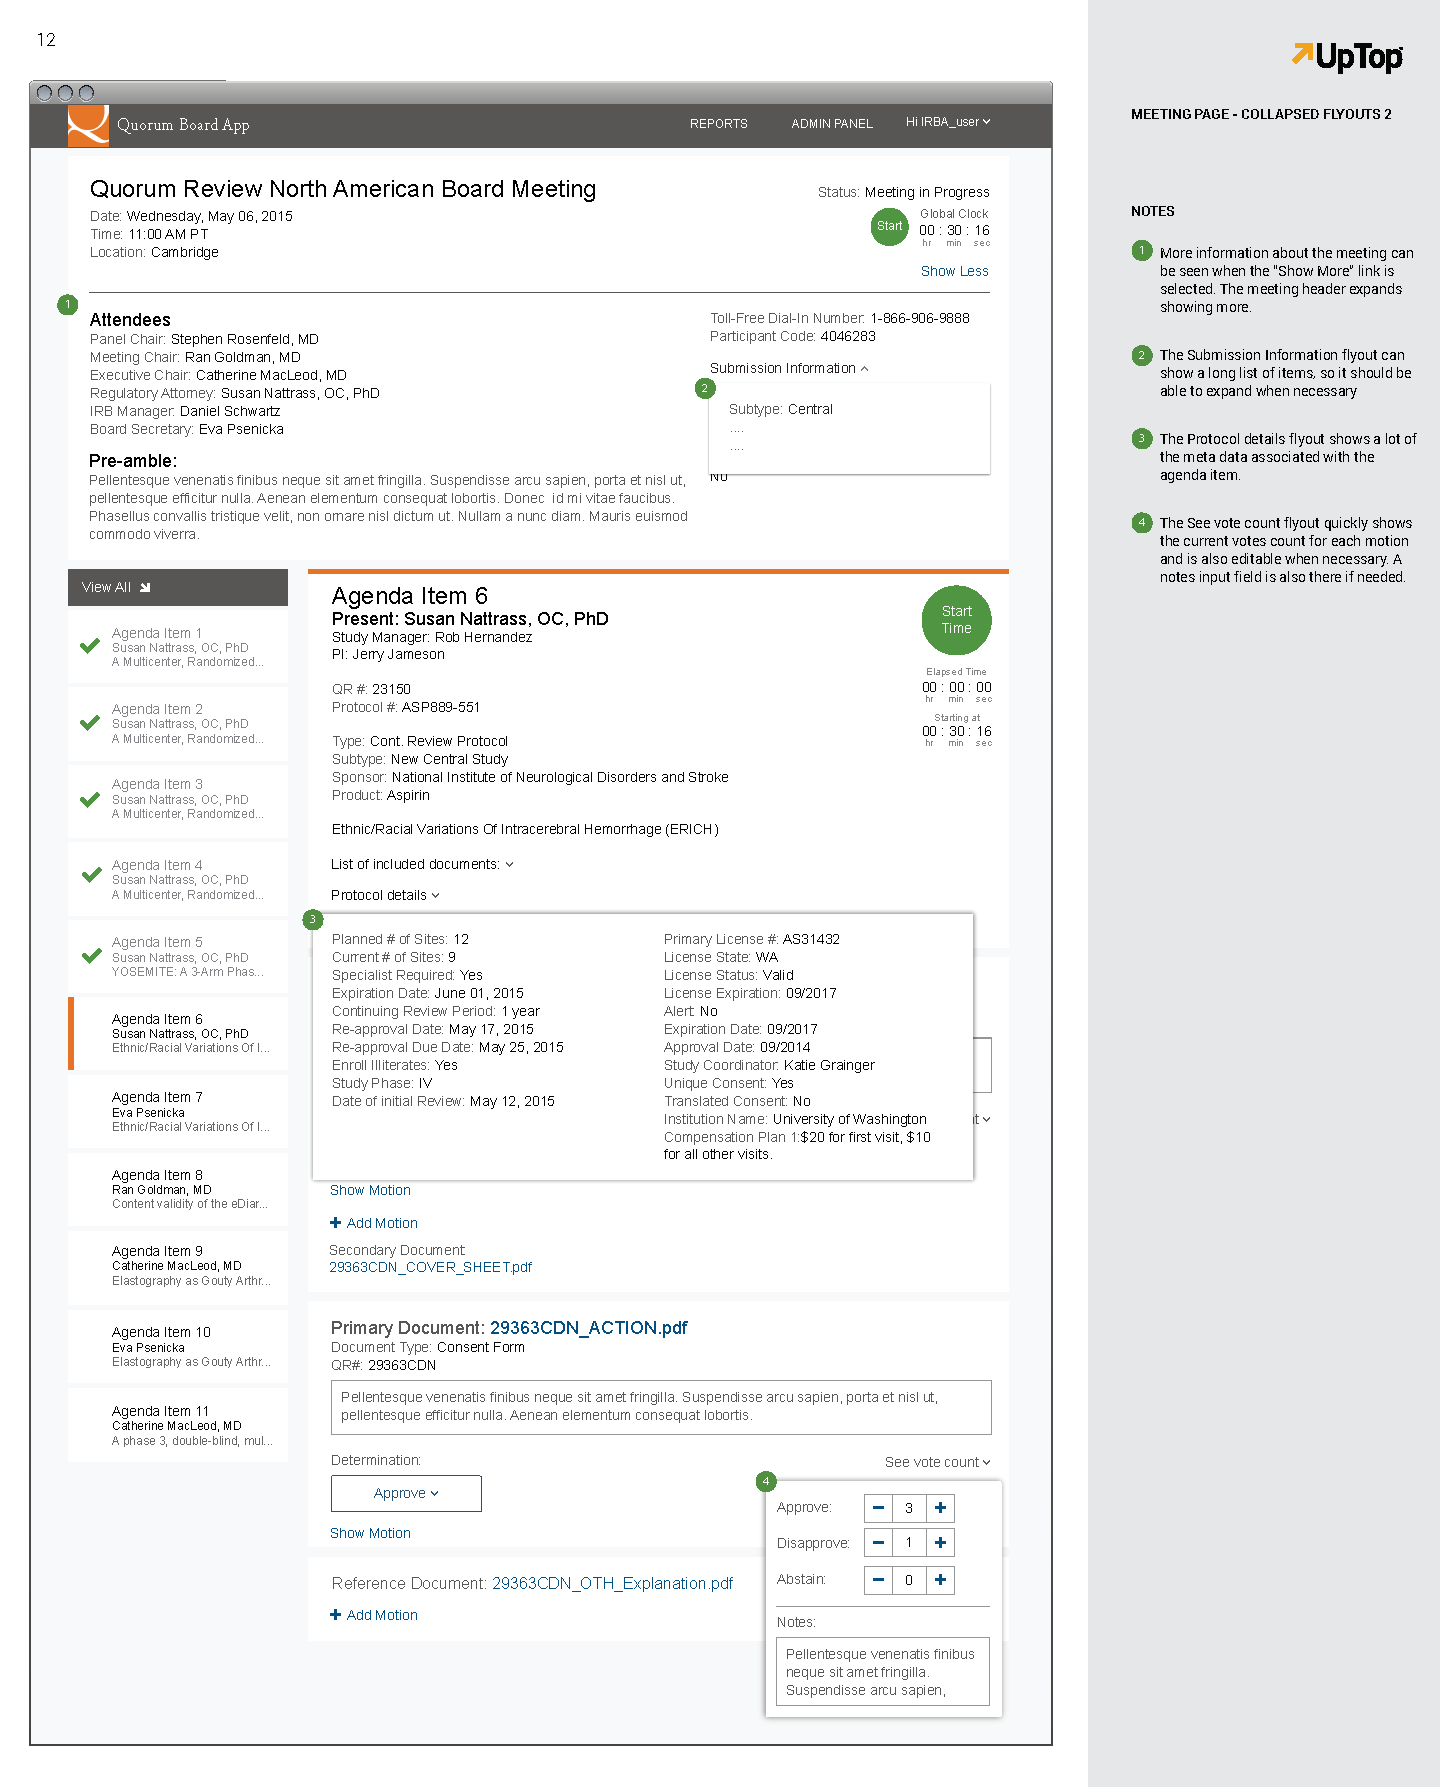 04 - quorum_review_boardapp_wireframes_dashboard_FINAL_Page_12.png